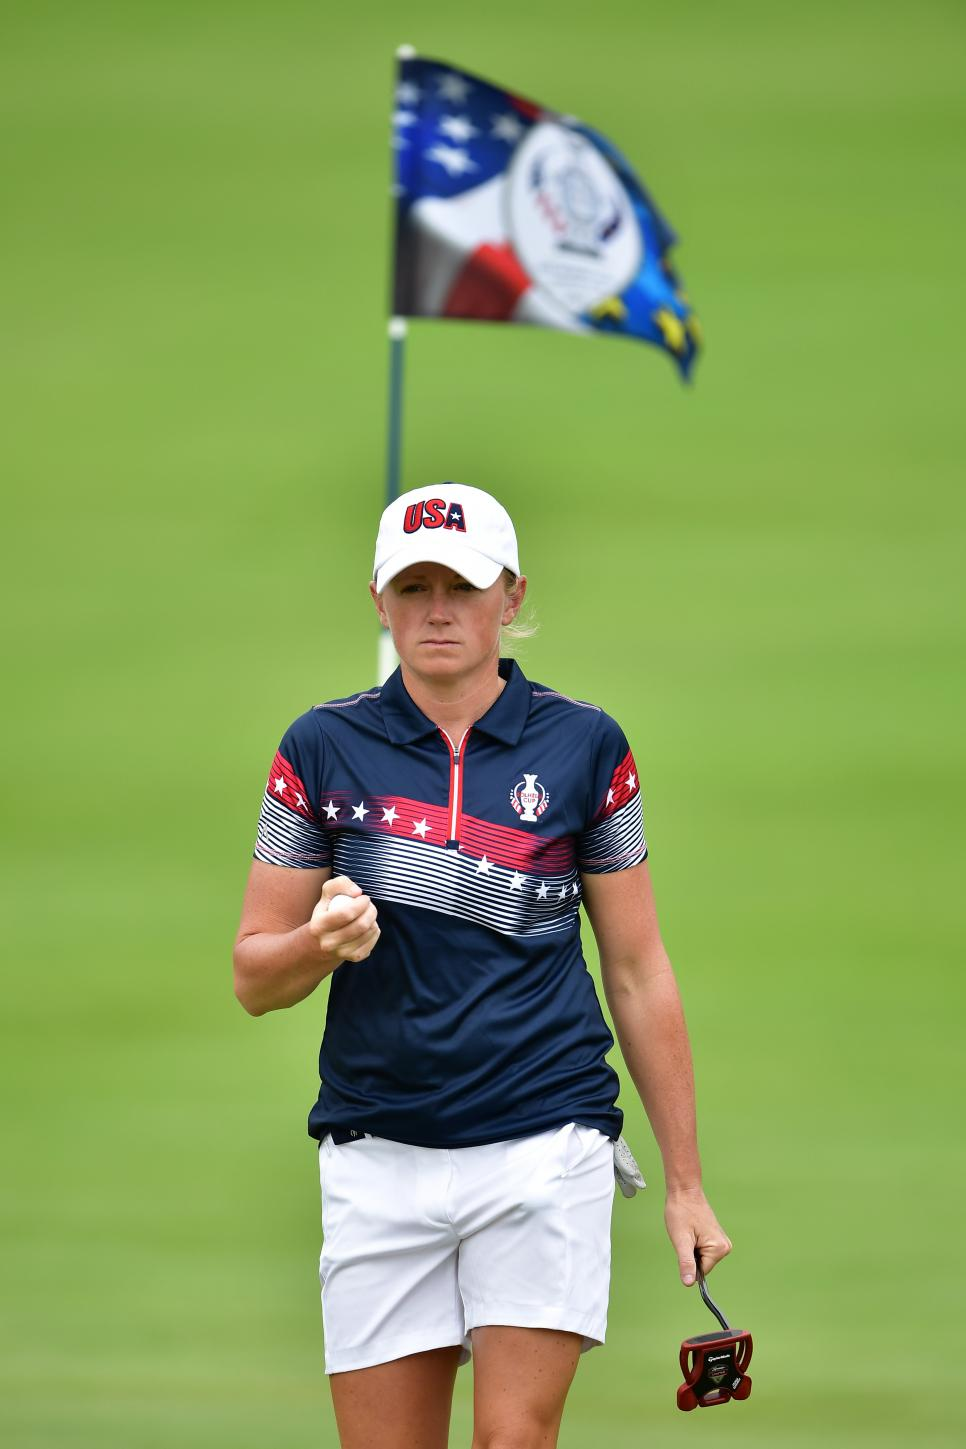 stacy lewis - solheim cup